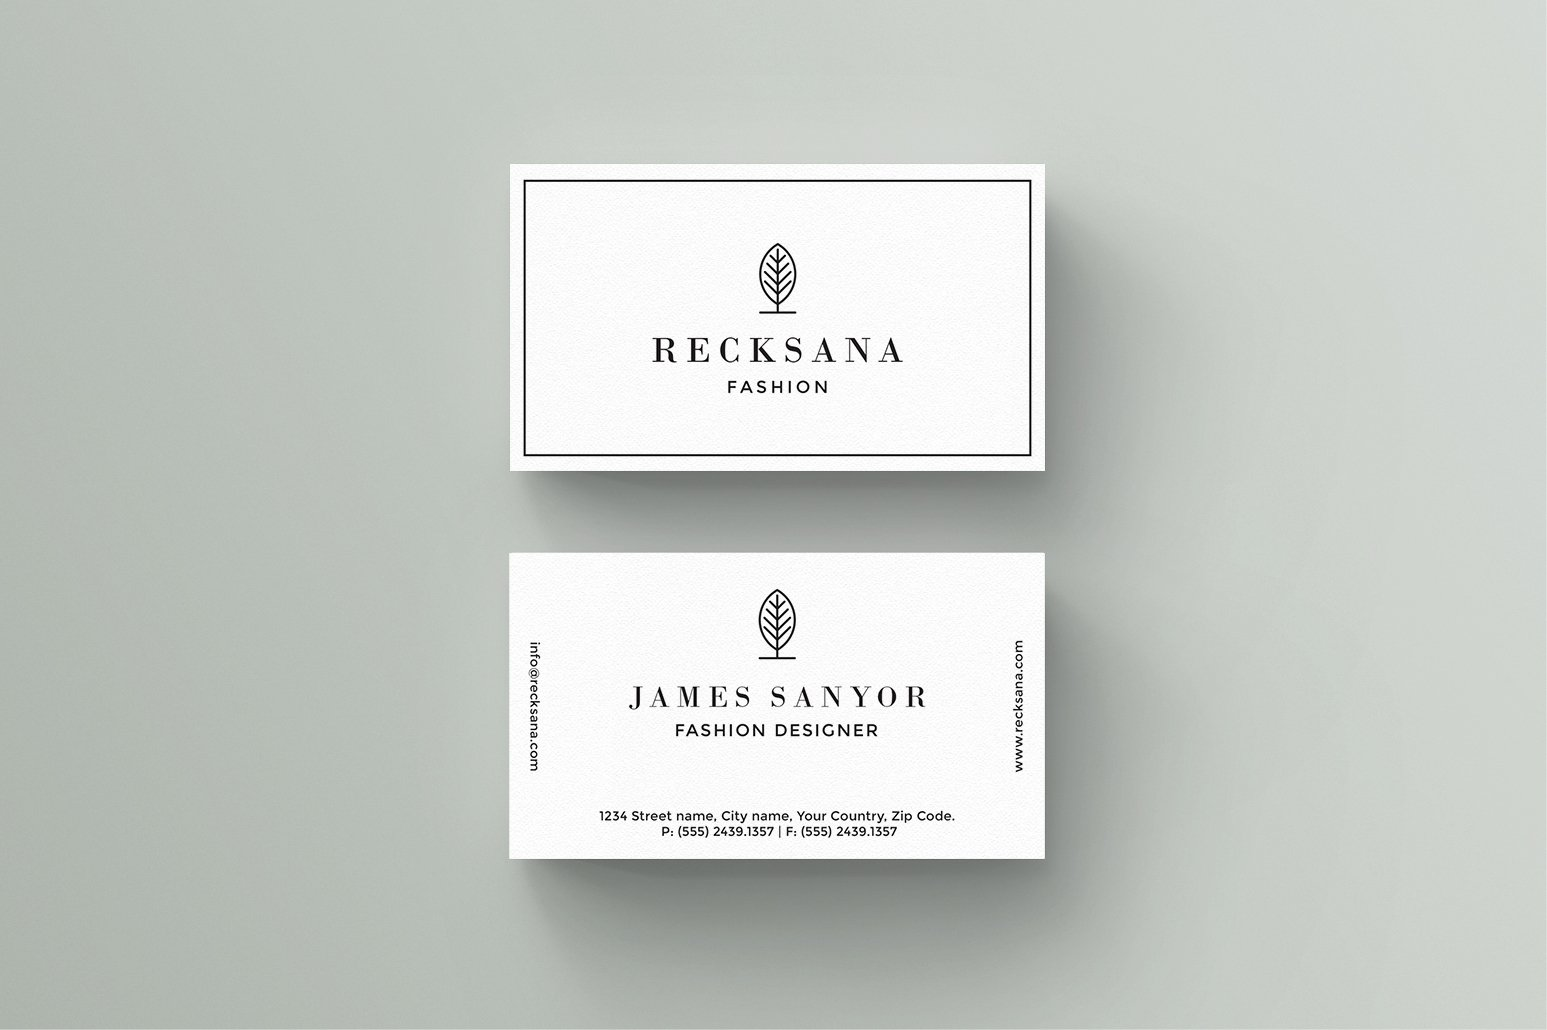 buisiness card template - recksana business card template business card templates